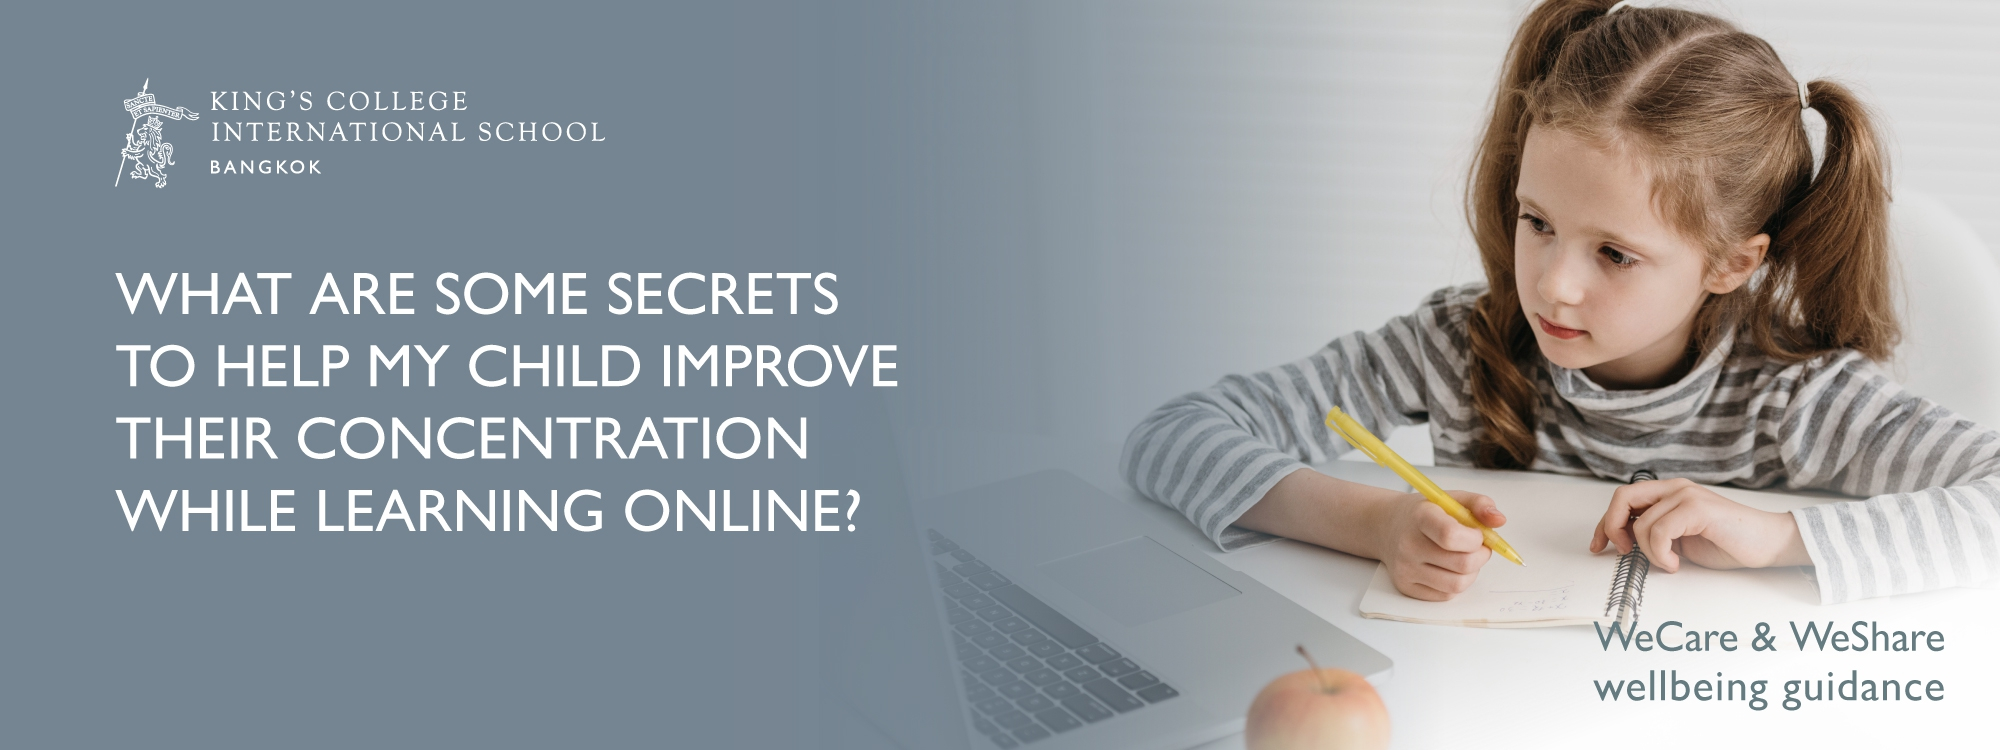 What are some secrets to help my child improve their concentration while learning online?